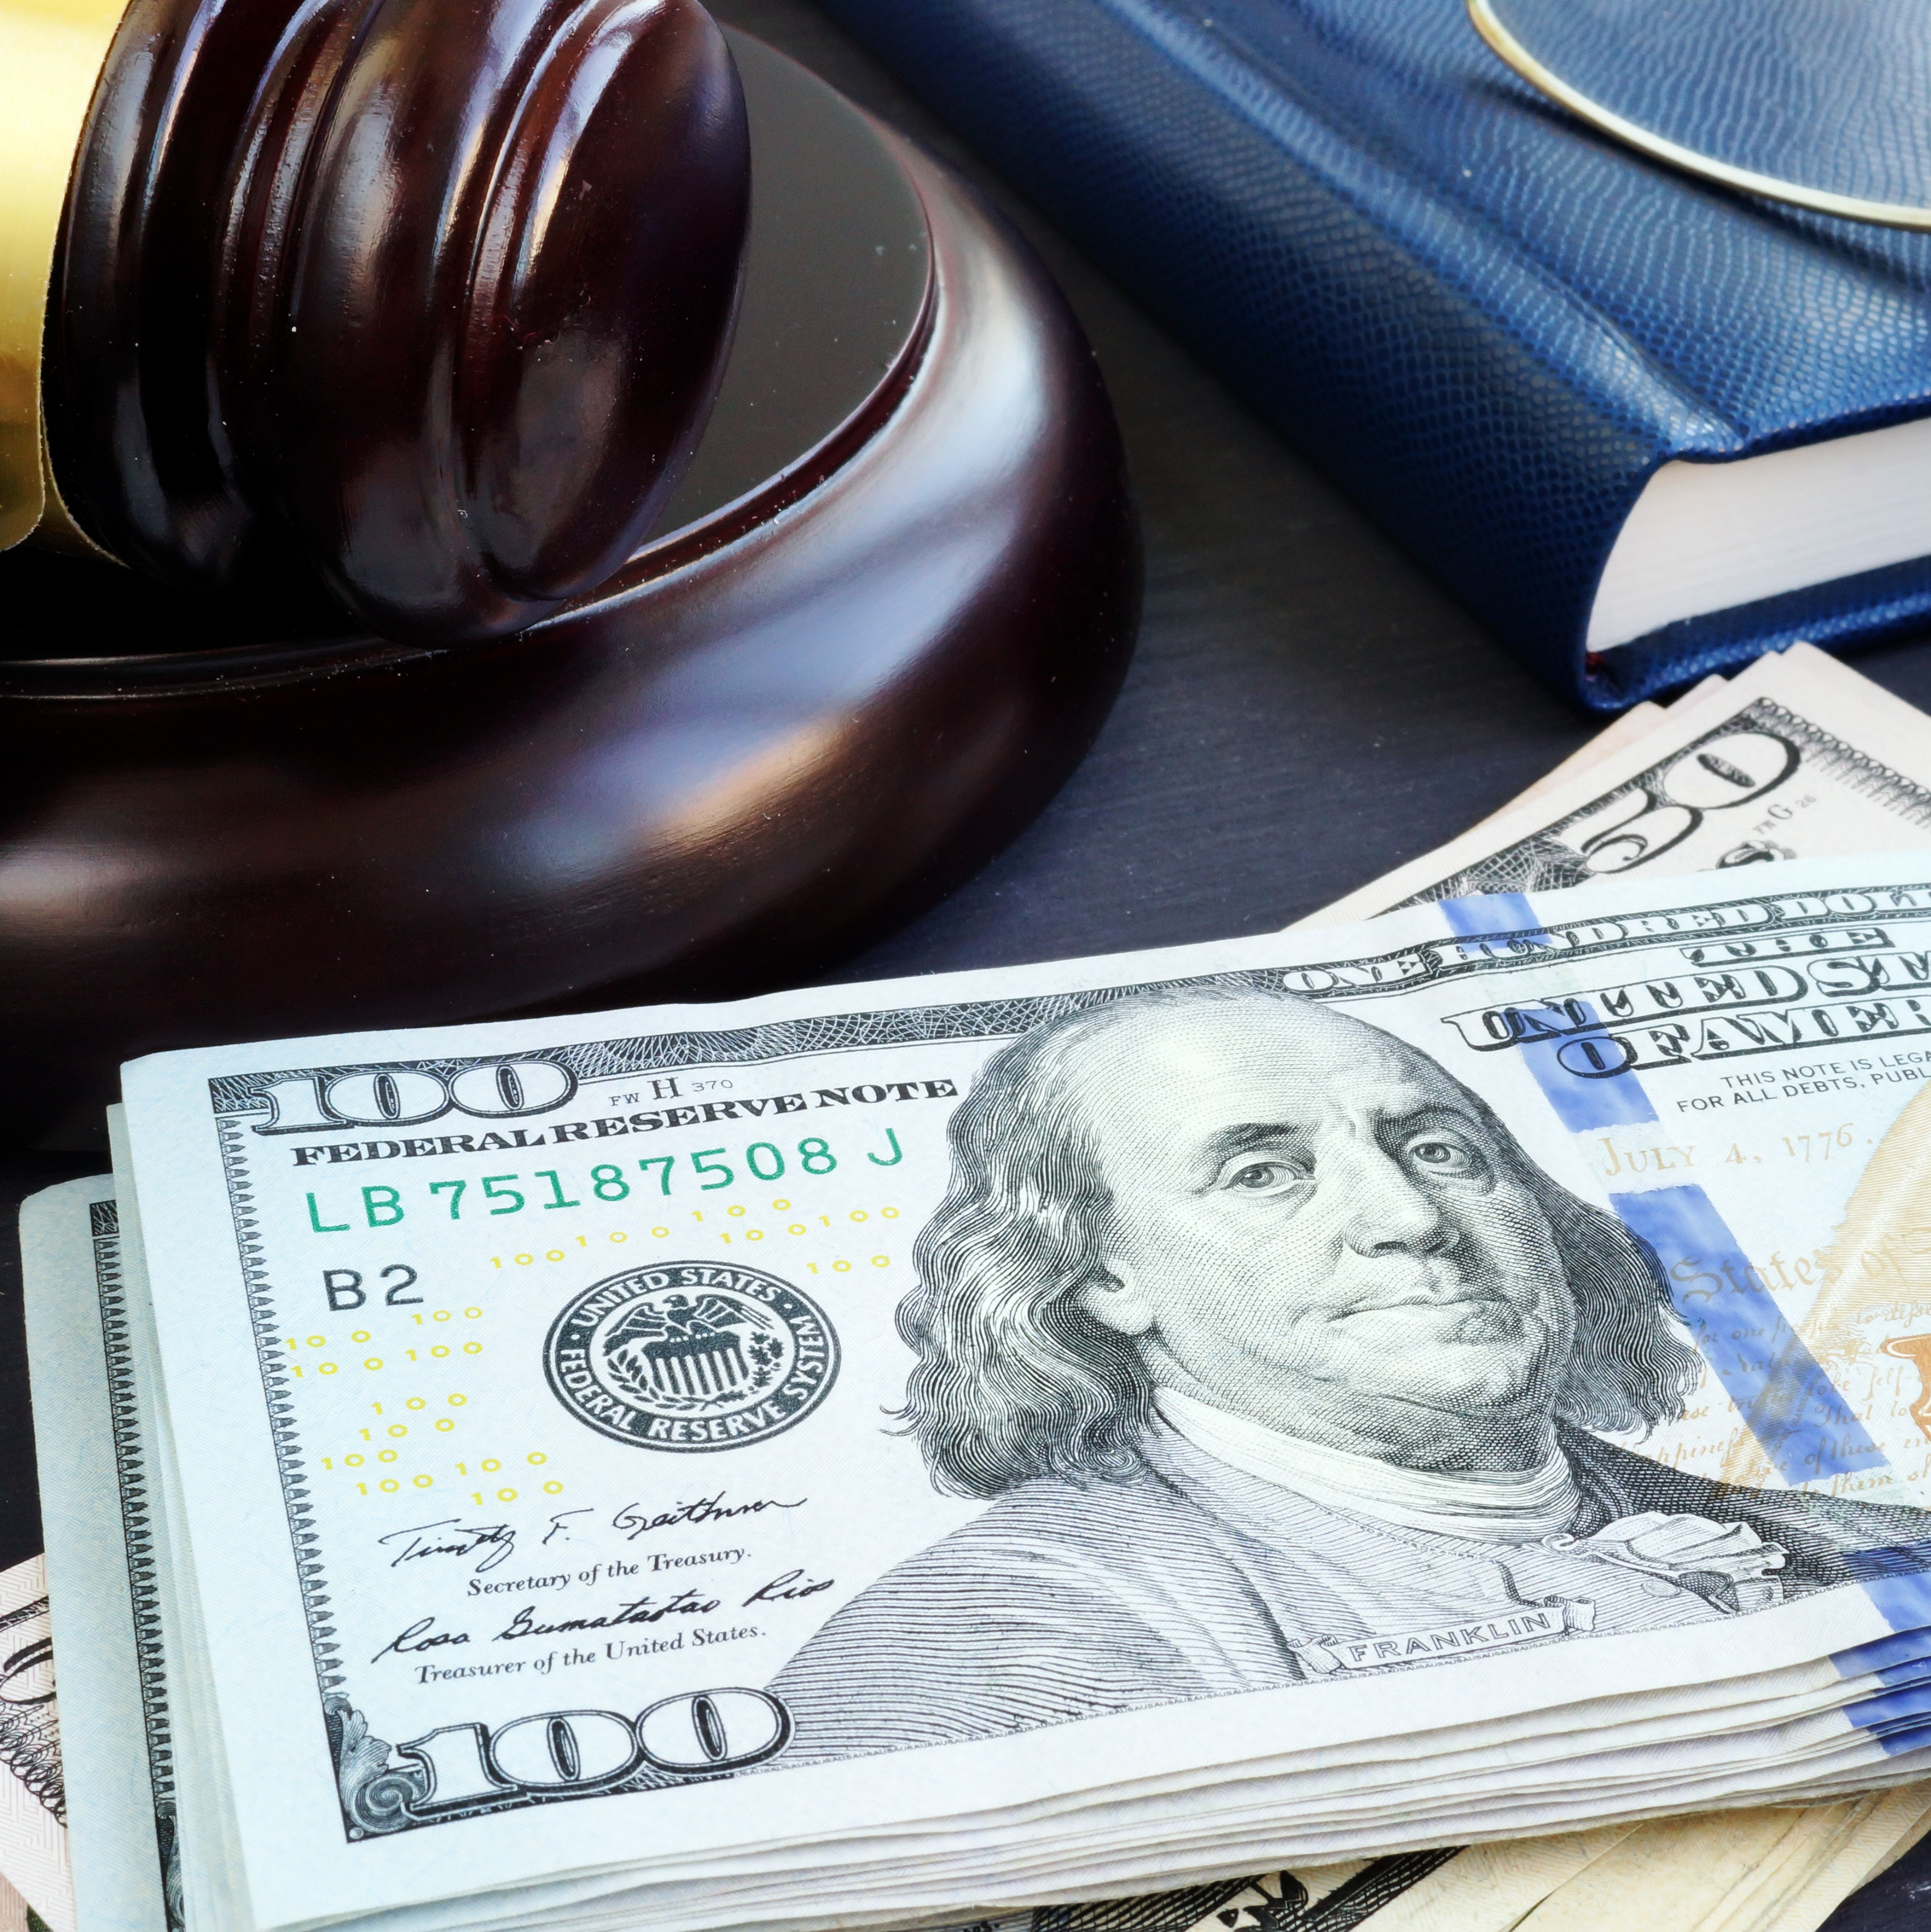 Money on a desk with a gavel in the foreground.